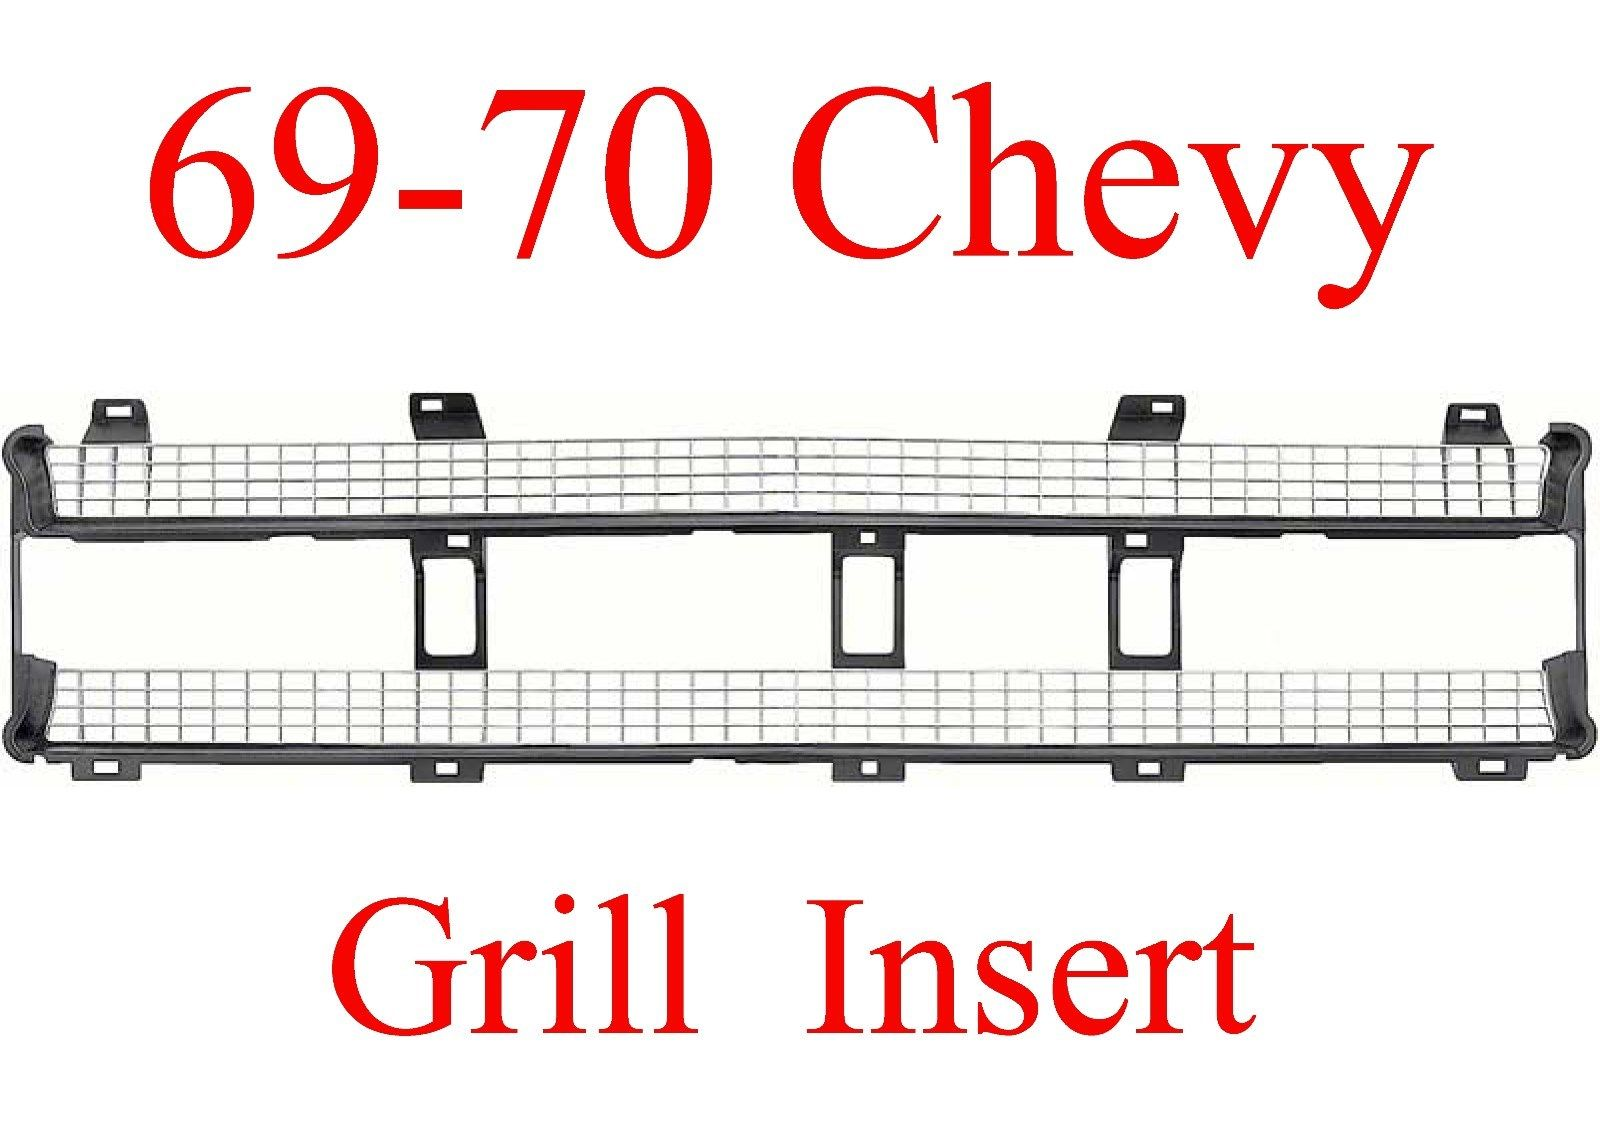 69-70 Chevy Truck Grill Insert